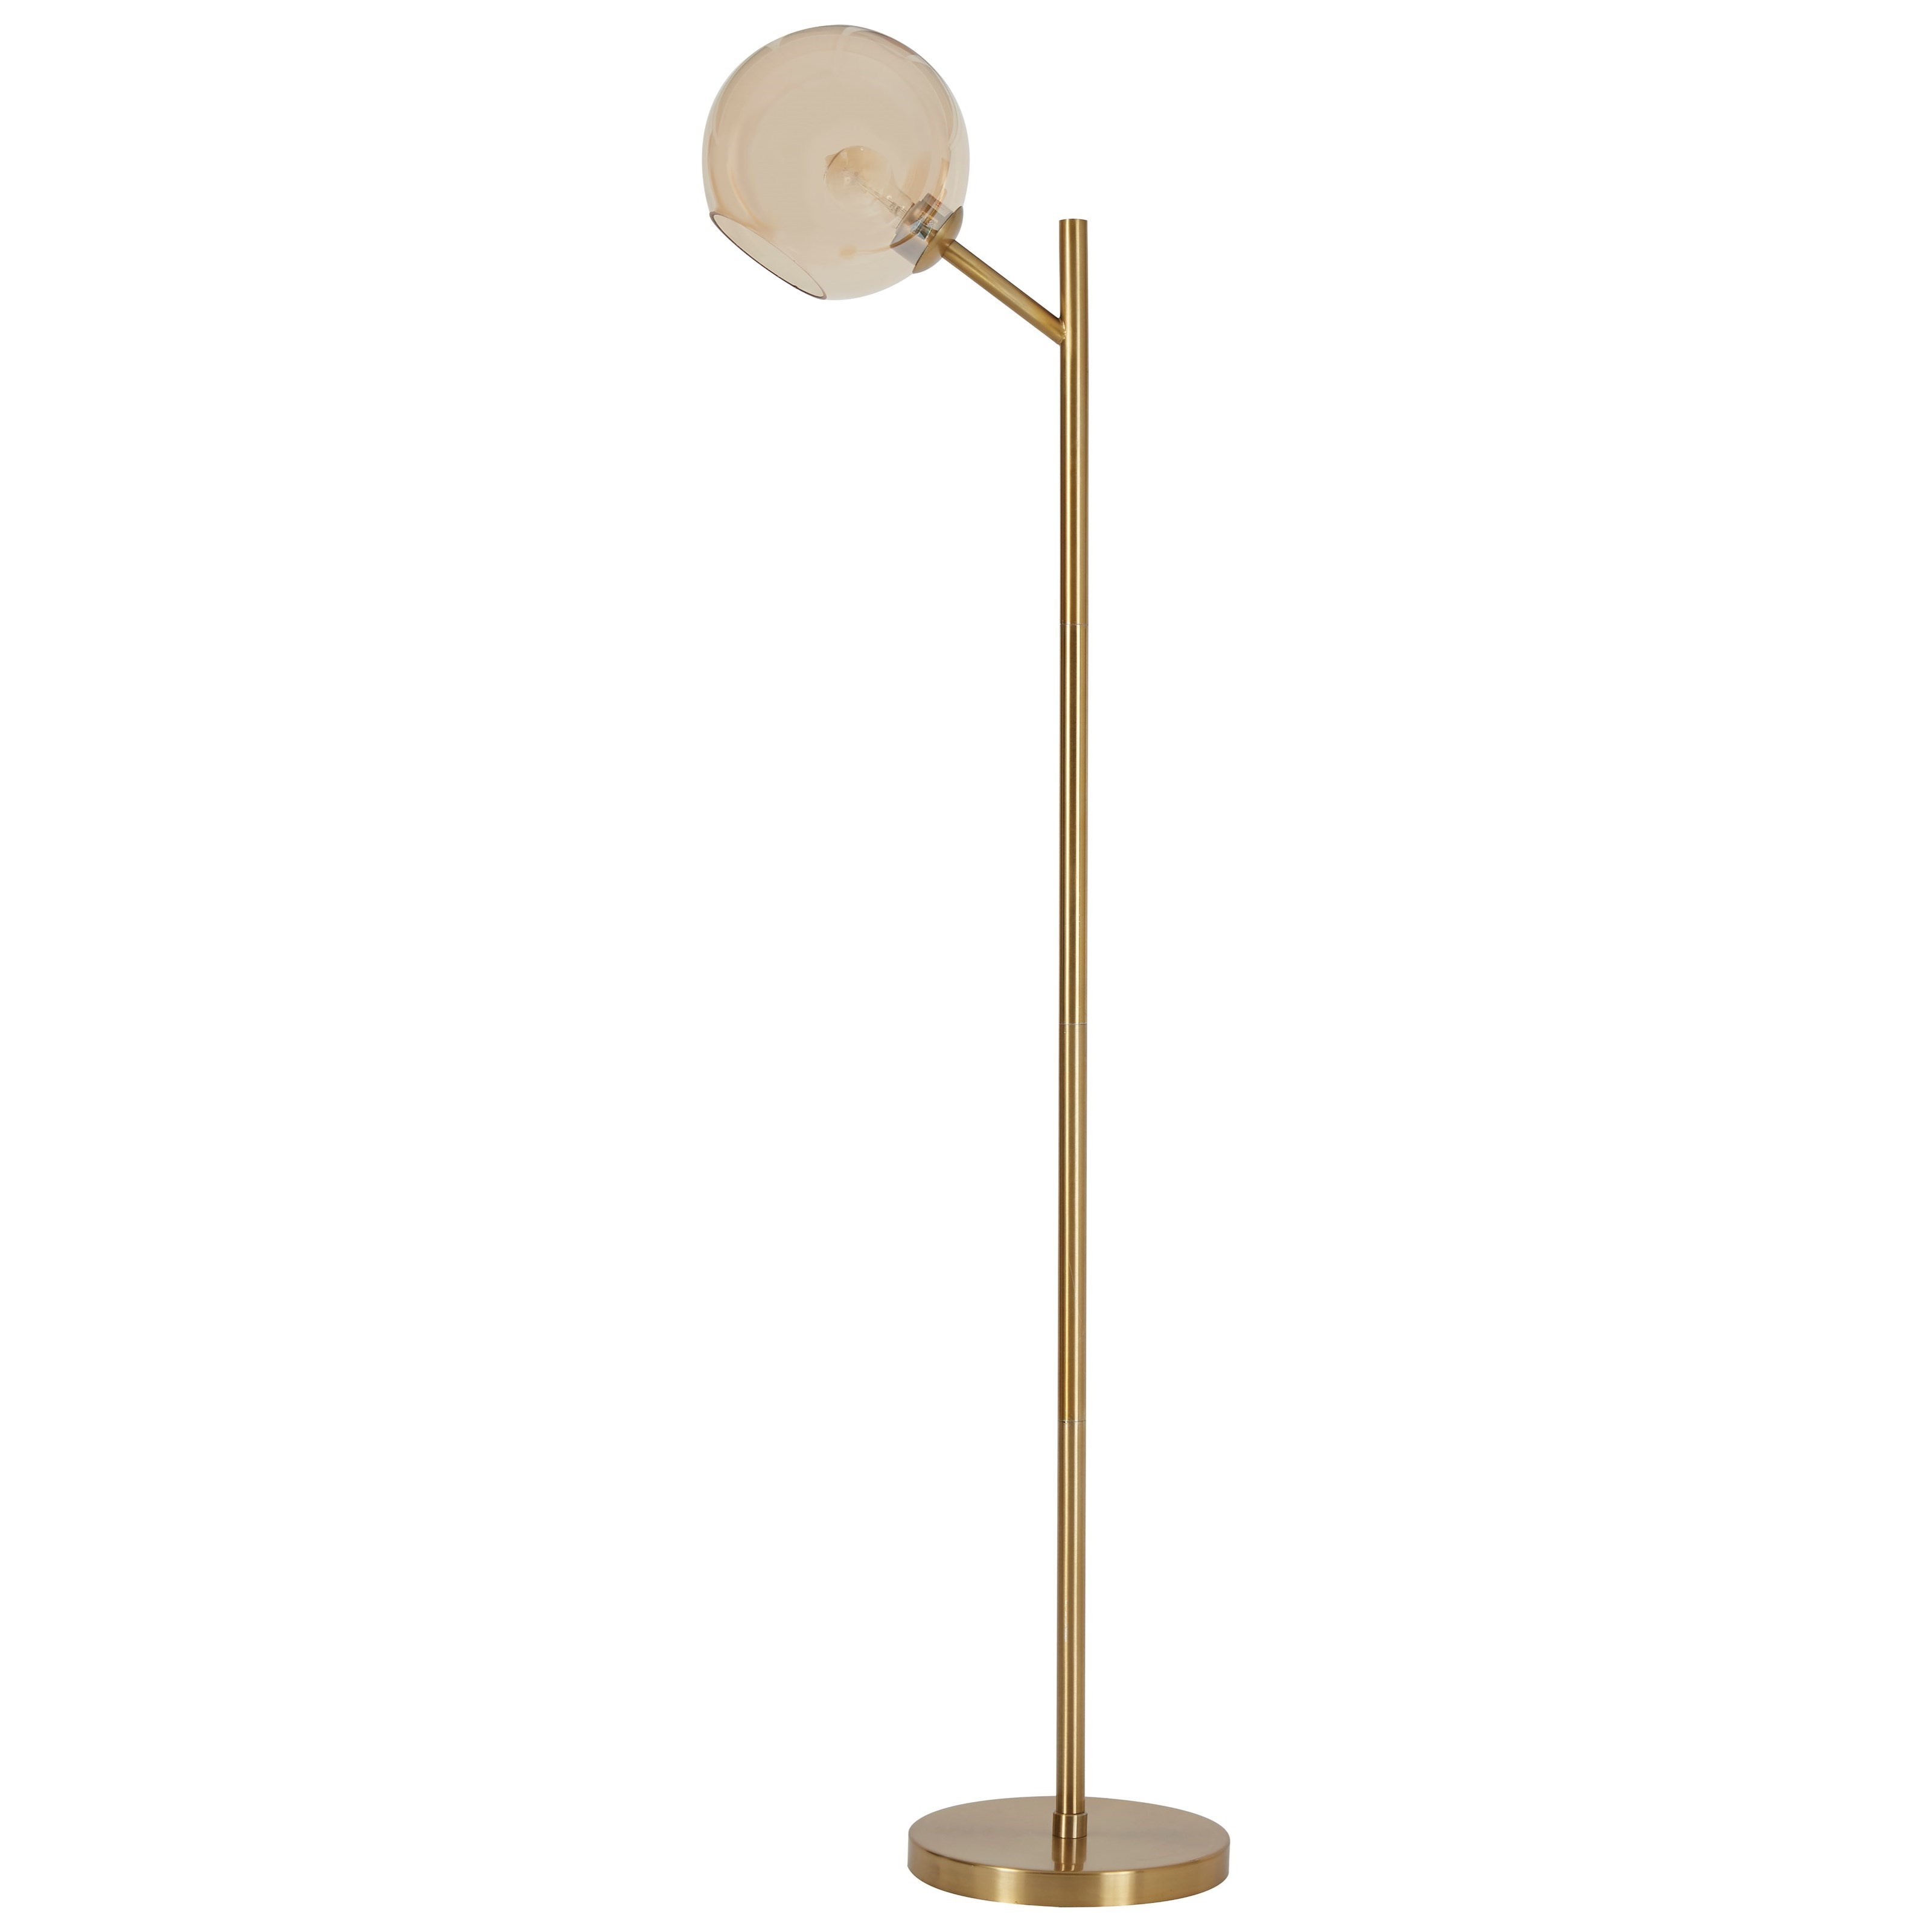 Lamps - Contemporary Abanson Gold Finish Metal Floor Lamp by Signature Design by Ashley at Houston's Yuma Furniture